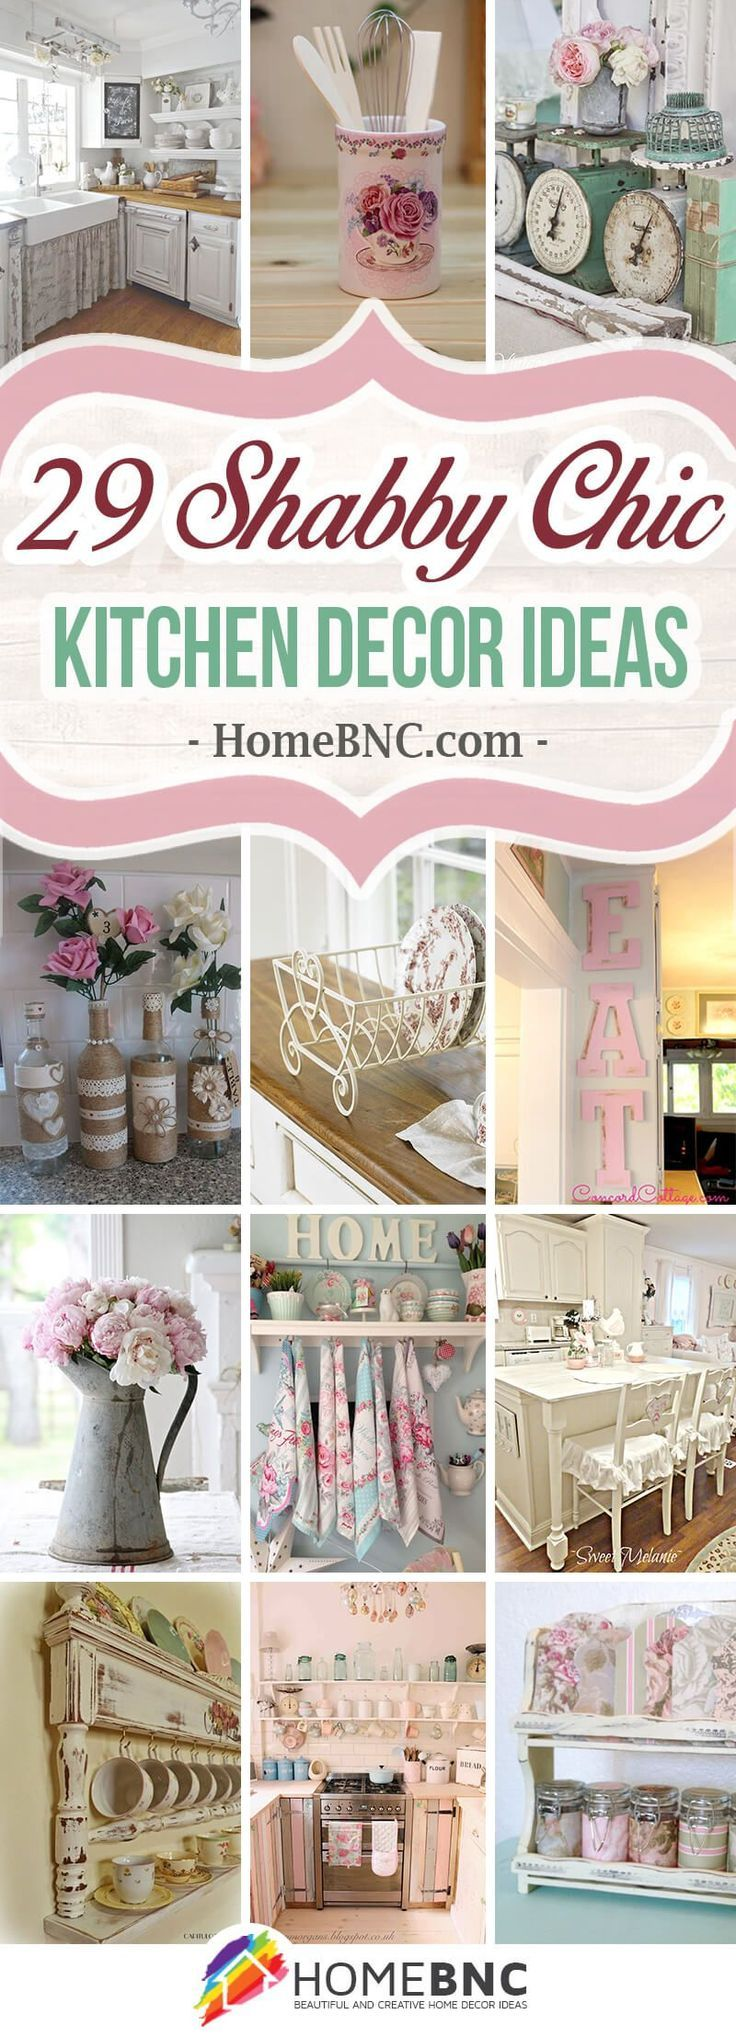 Perfekt 29 Gorgeous Shabby Chic Kitchen Decor Ideas That Are Comfy, Cozy And Sweet